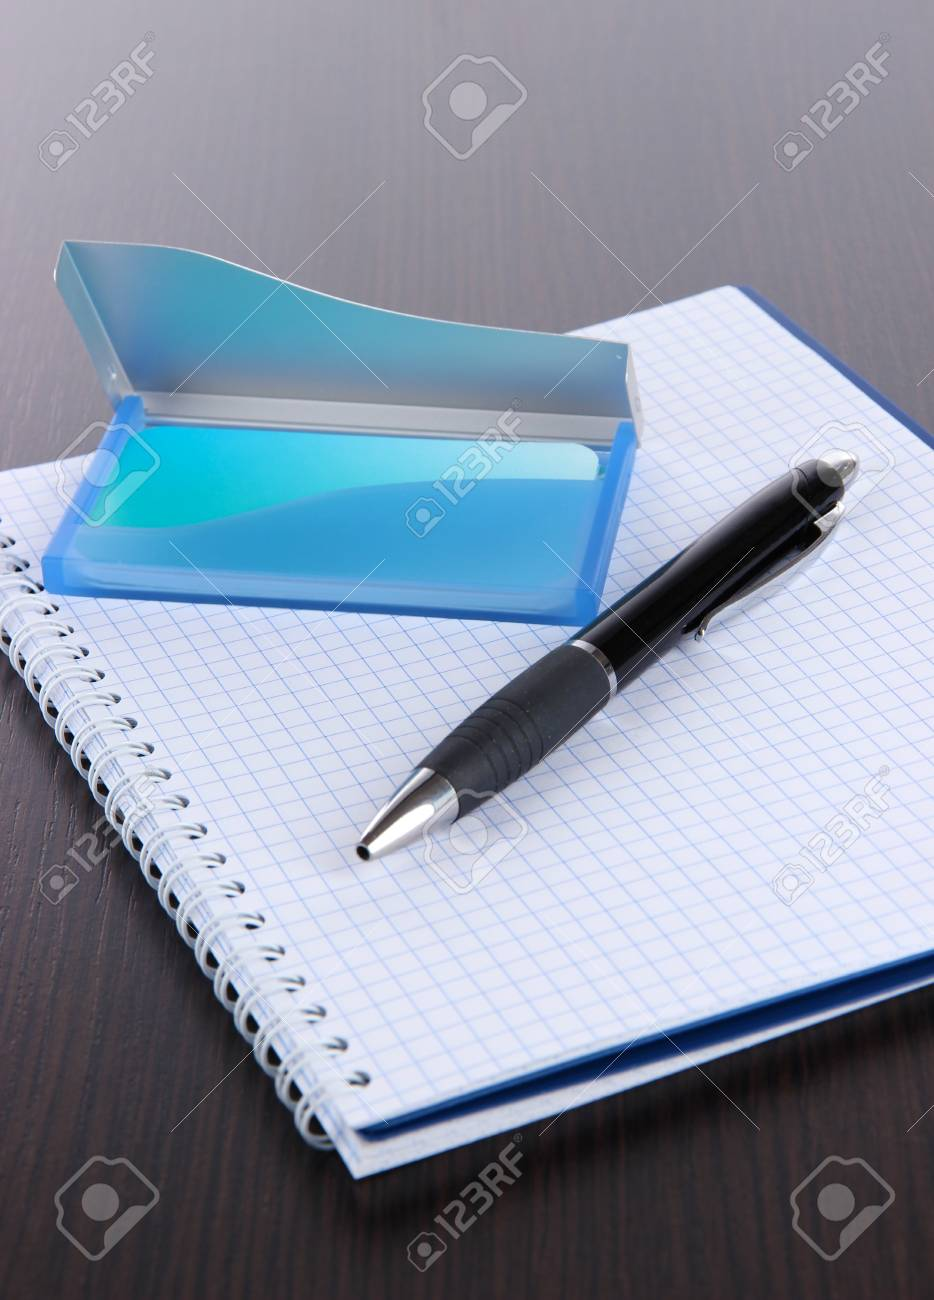 Blue Business Card Holder Notebook And Pen Close Up Stock Photo